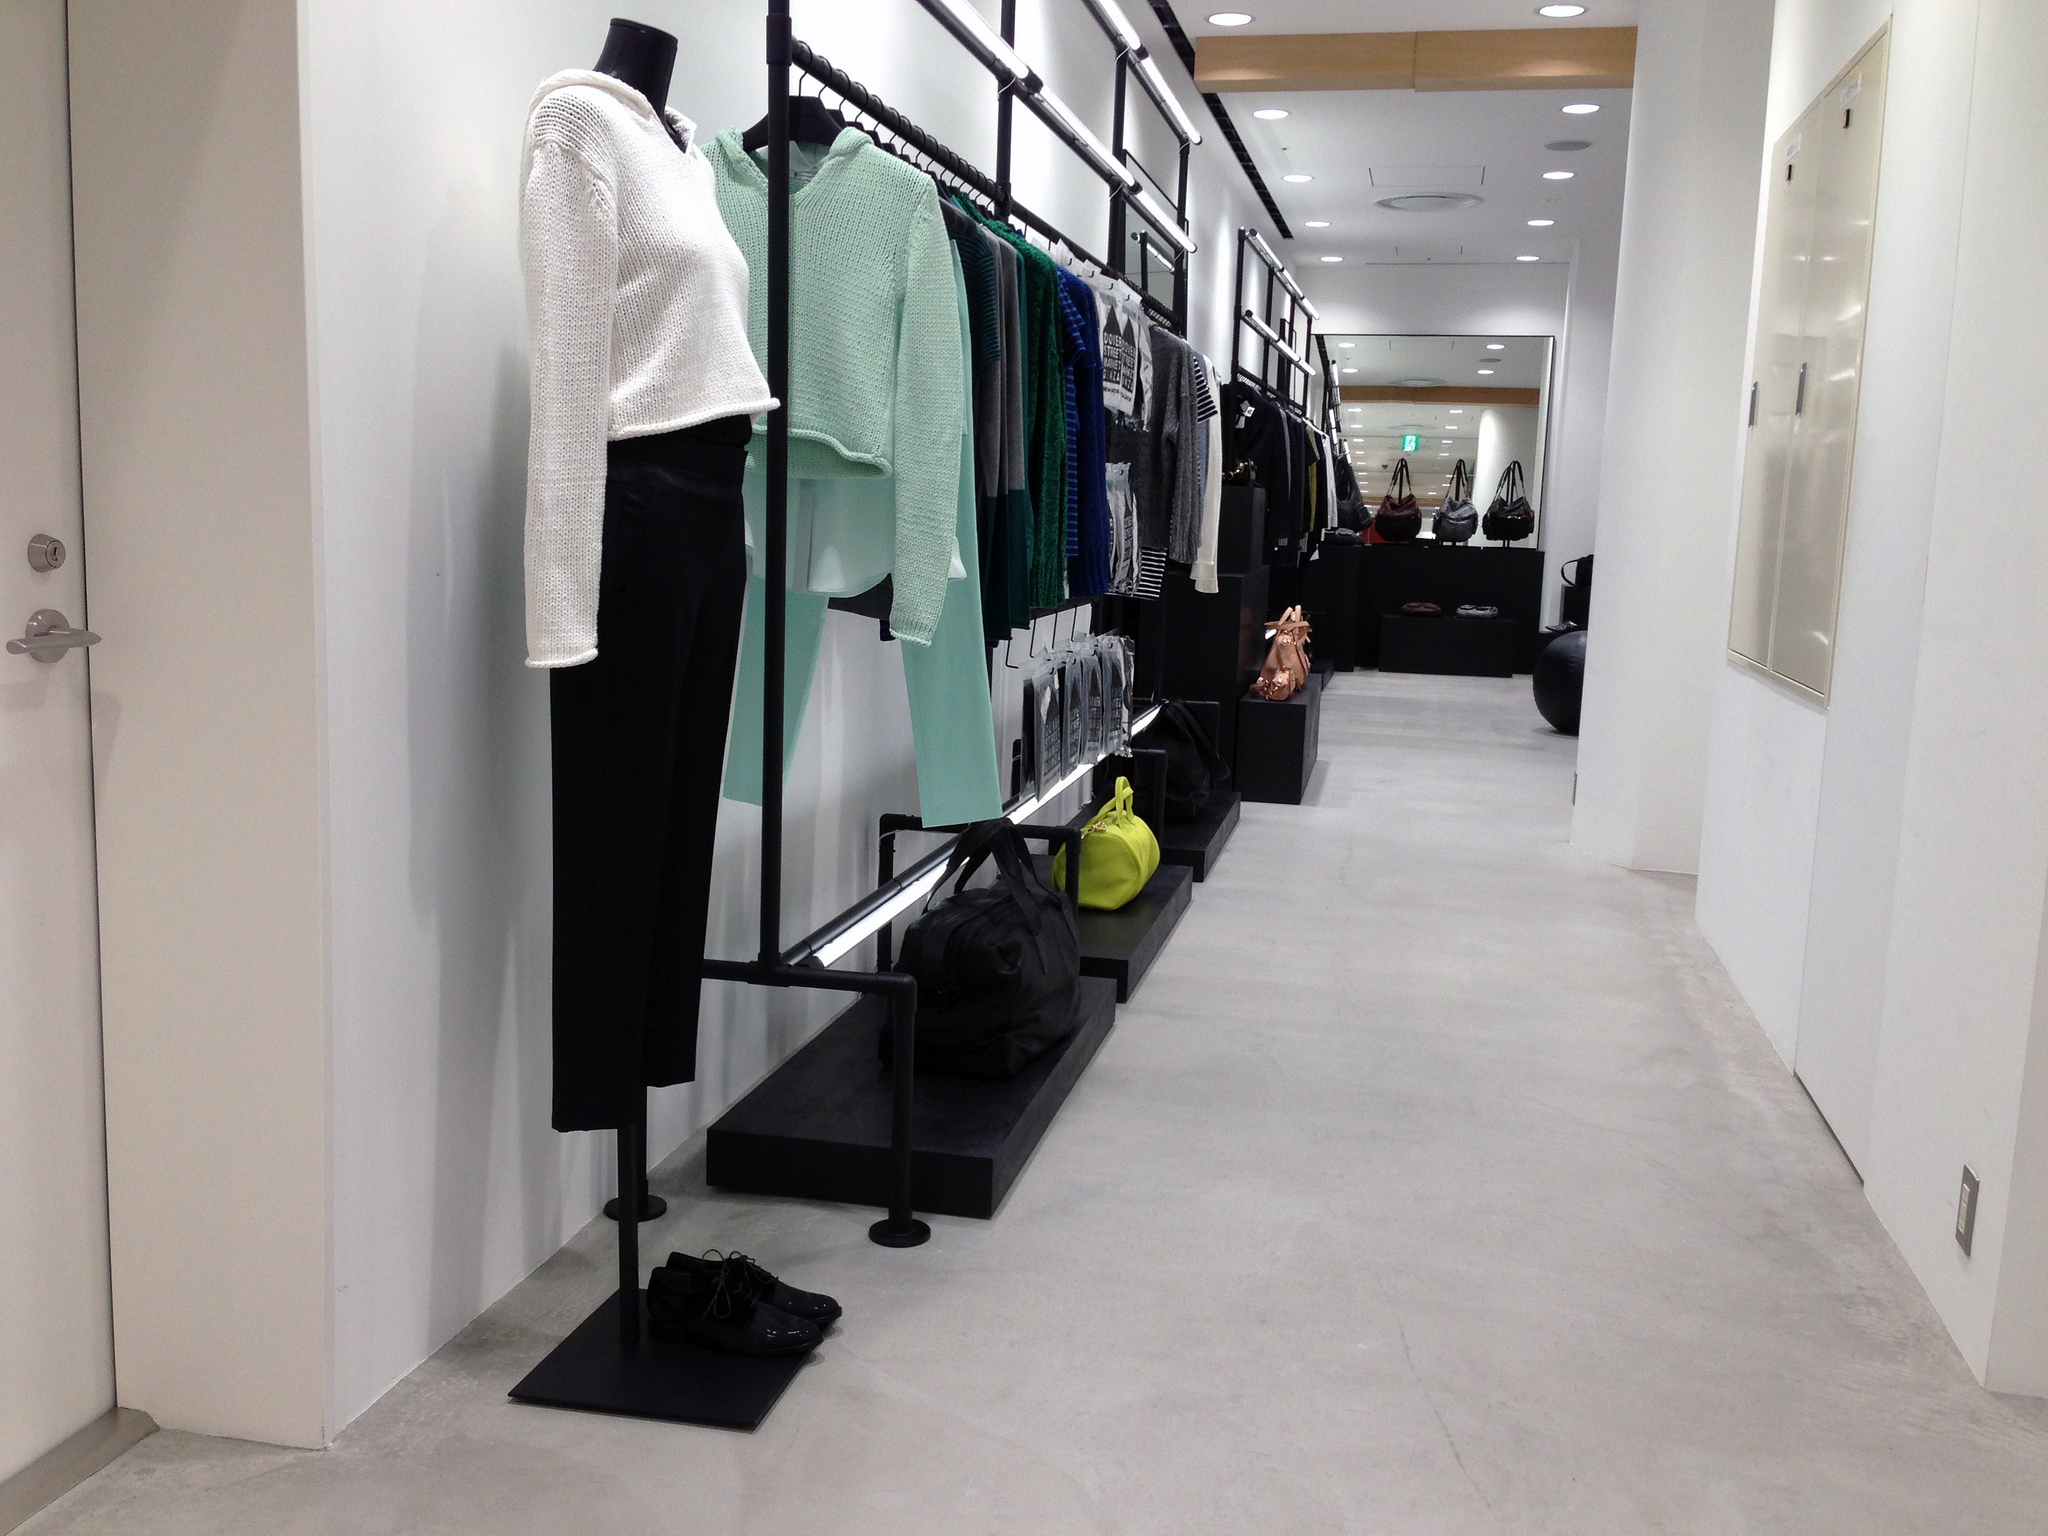 Fashion display and merchandising inside Dover Street Market in Tokyo. Photo by alphacityguides.